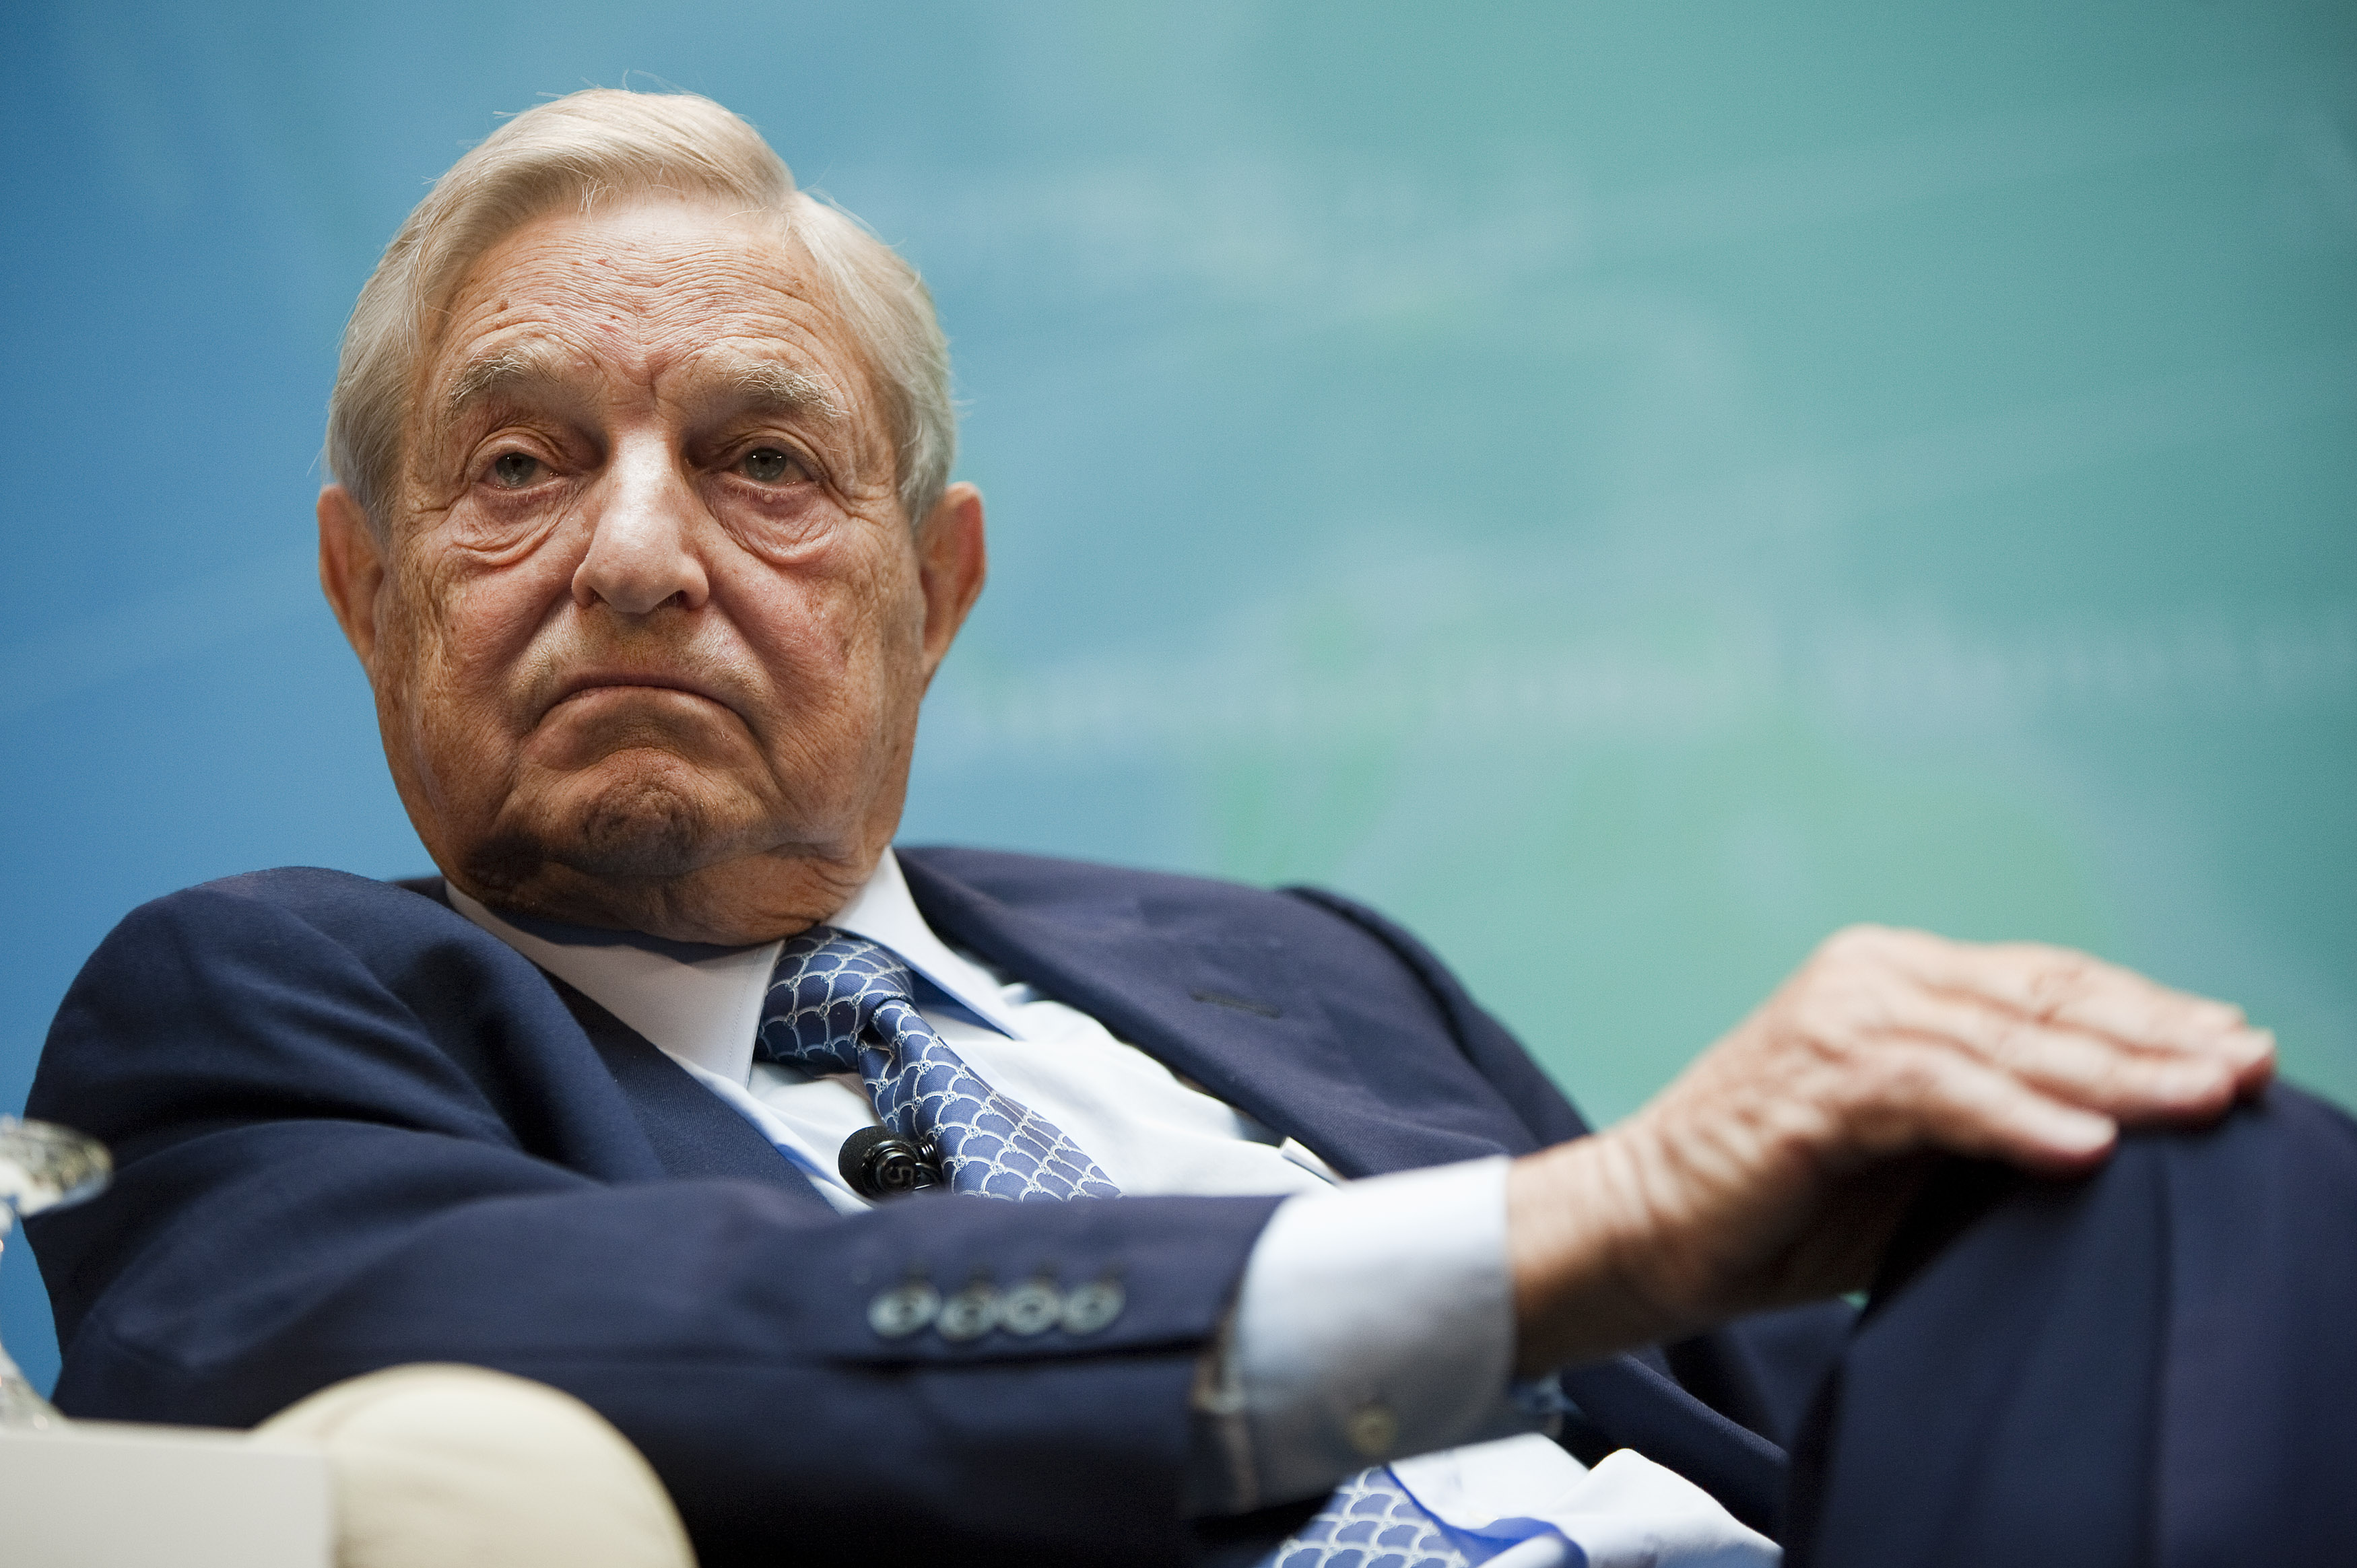 George Soros earned a  million dollar salary - leaving the net worth at 28000 million in 2018